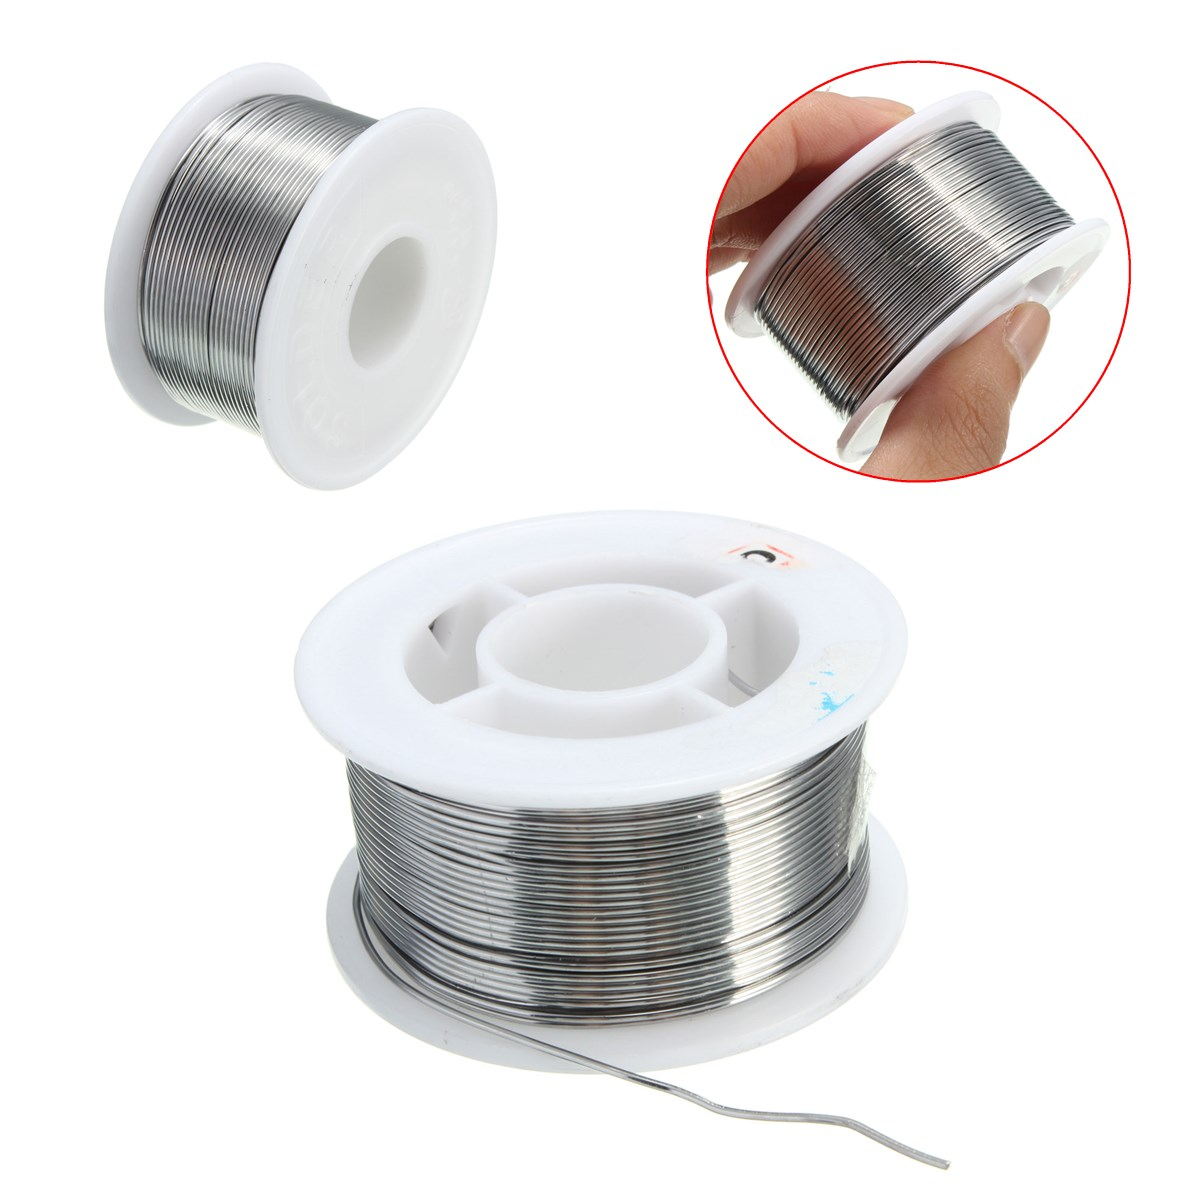 Tin lead <font><b>Solder</b></font> Wire Rosin Core 100g 0.8mm <font><b>60</b></font>/<font><b>40</b></font> Soldering 2% Flux Reel Tube New Good Solderability Insulation Resistance image